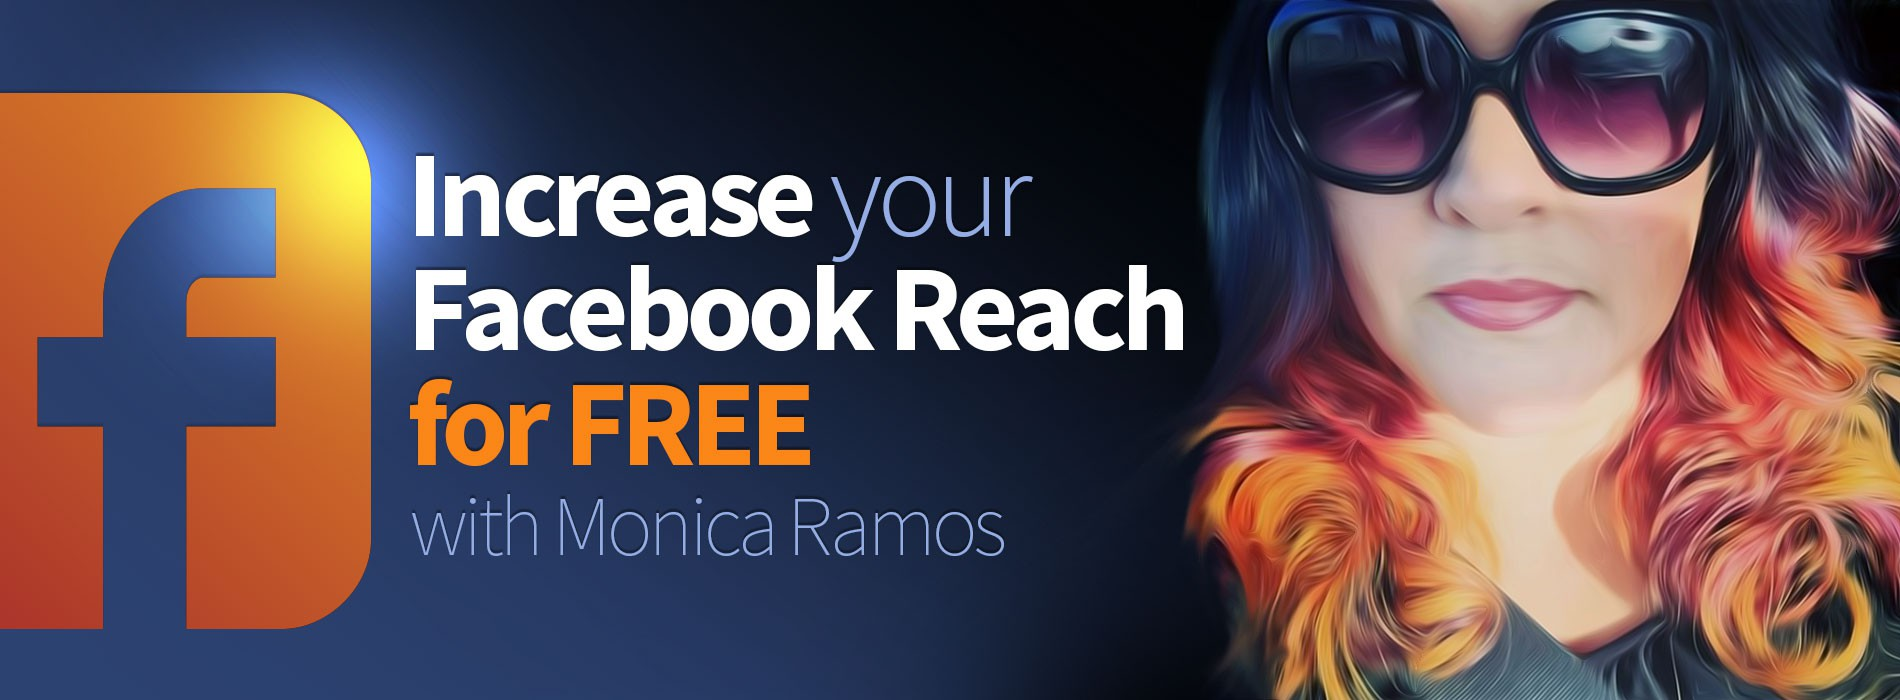 1900x700 Facebook Reach with Monica Ramos